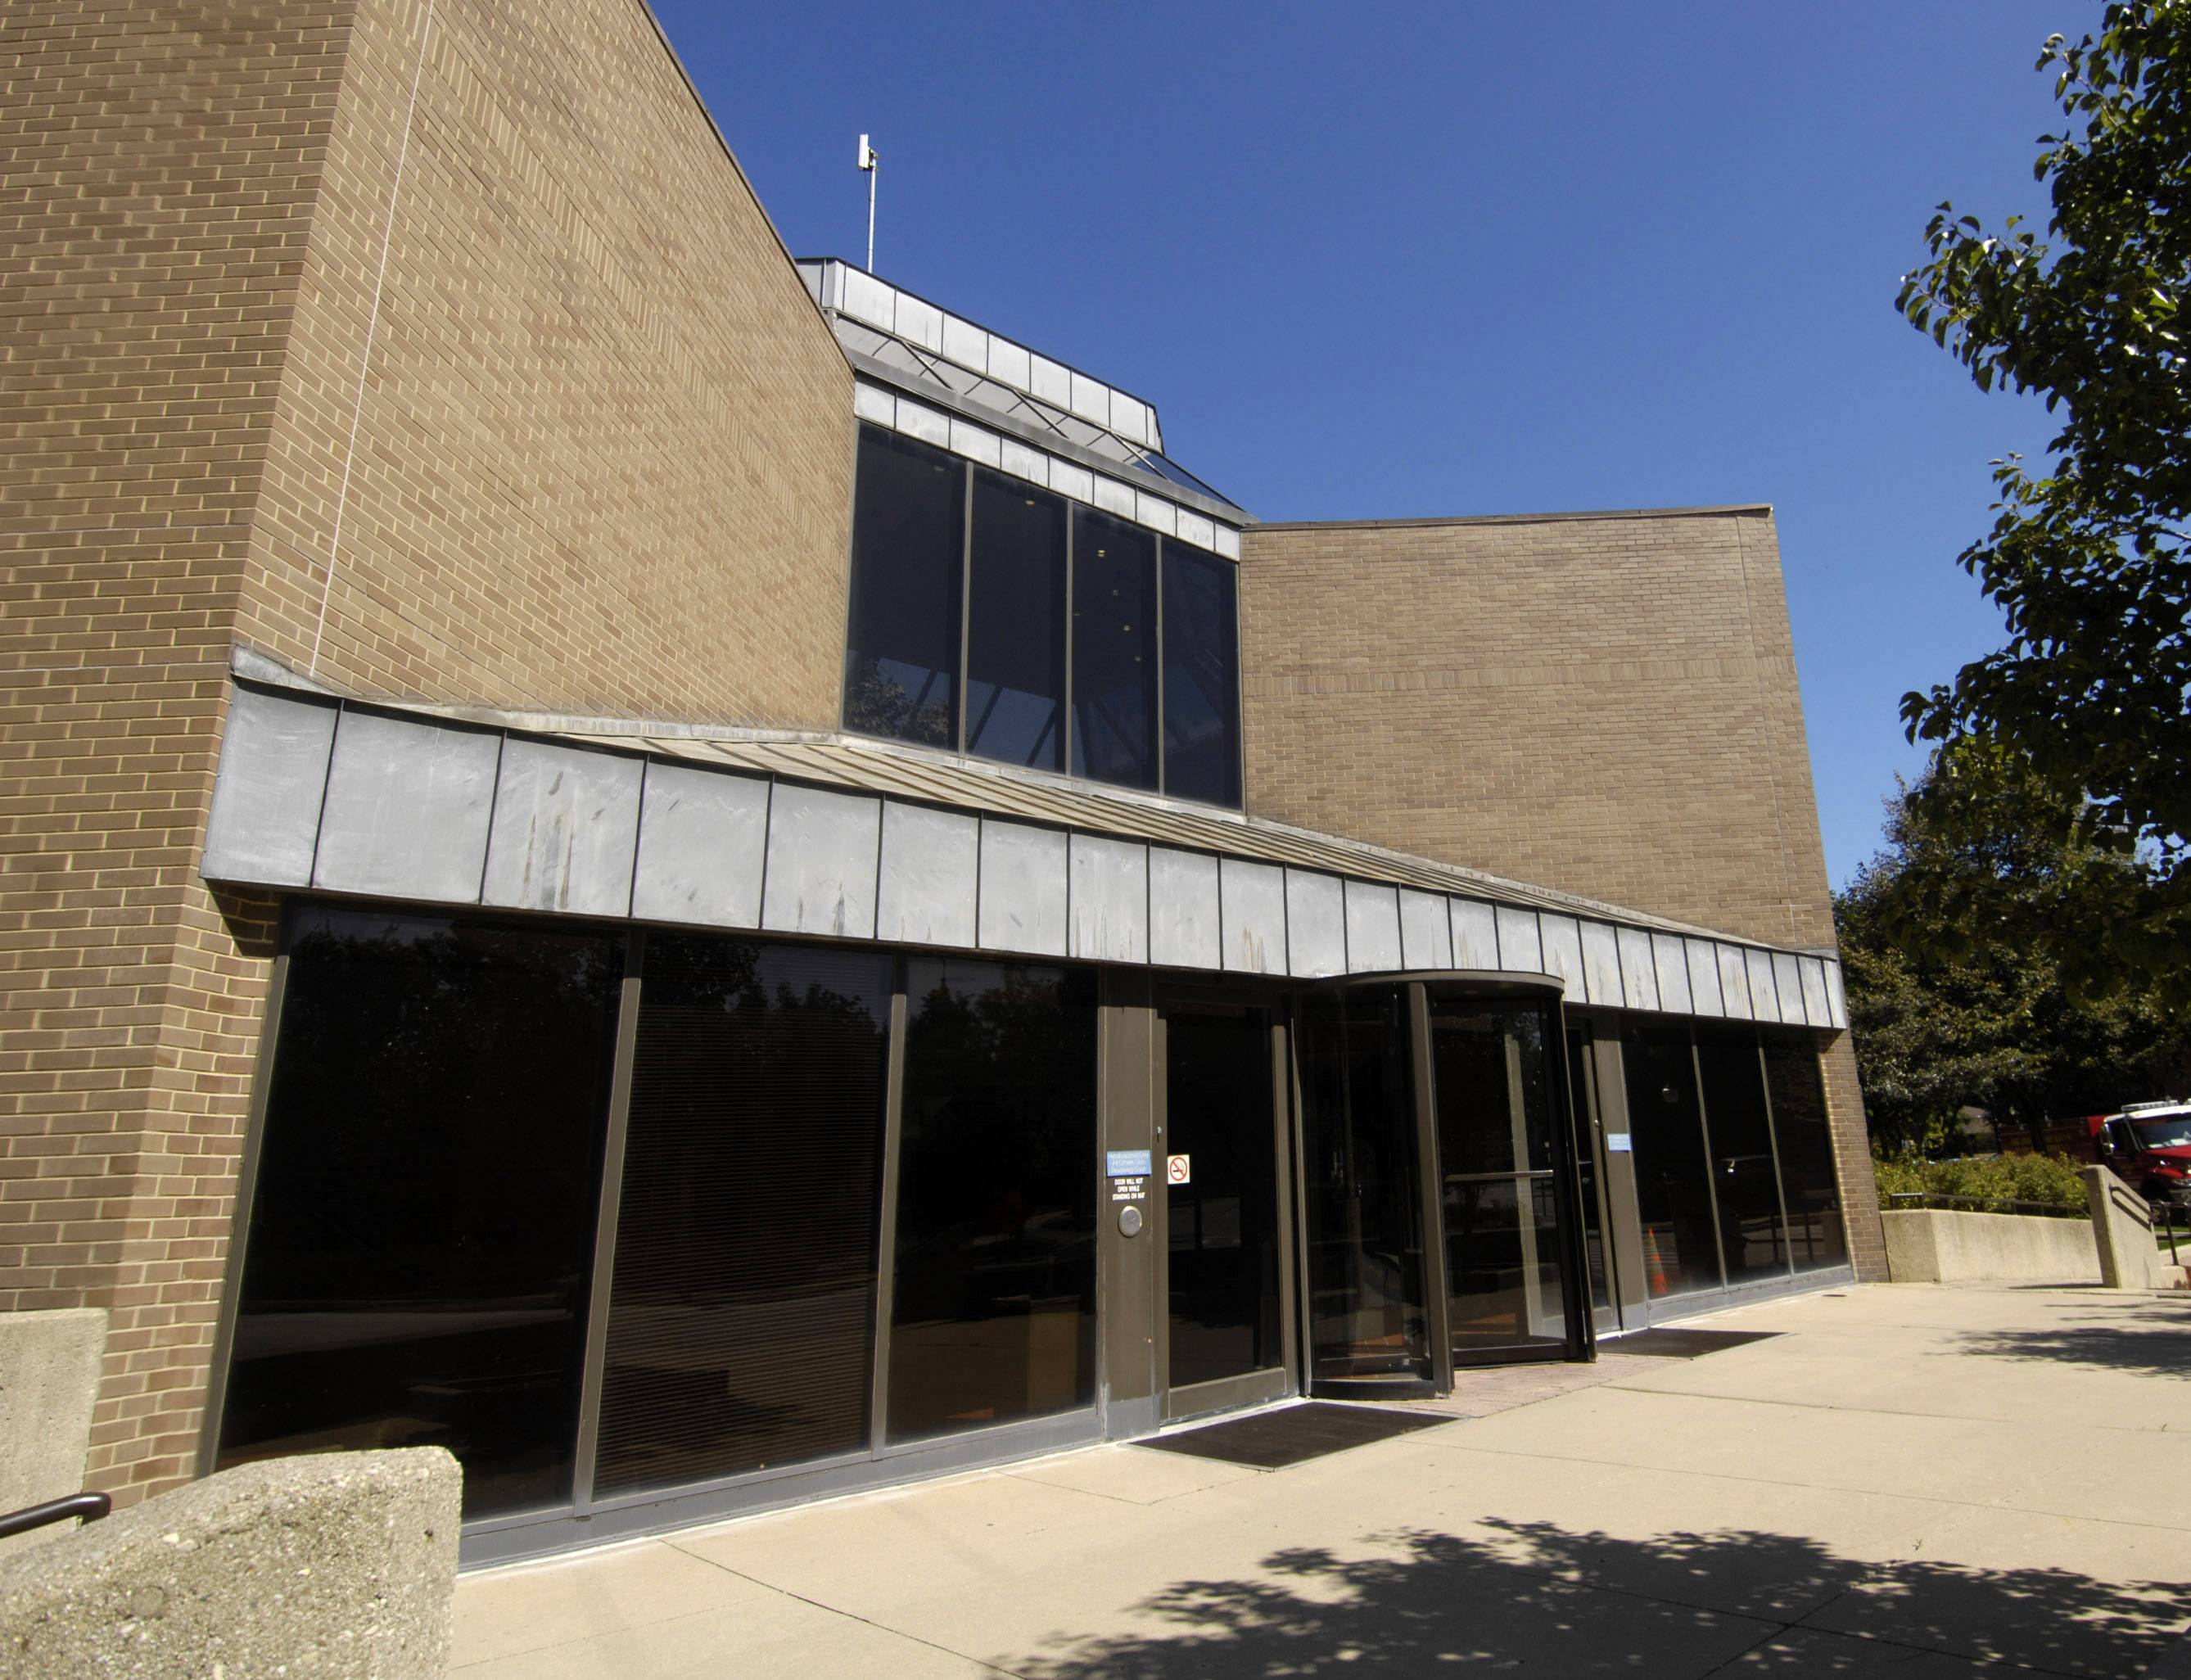 Arlington Hts. approves study for new police station